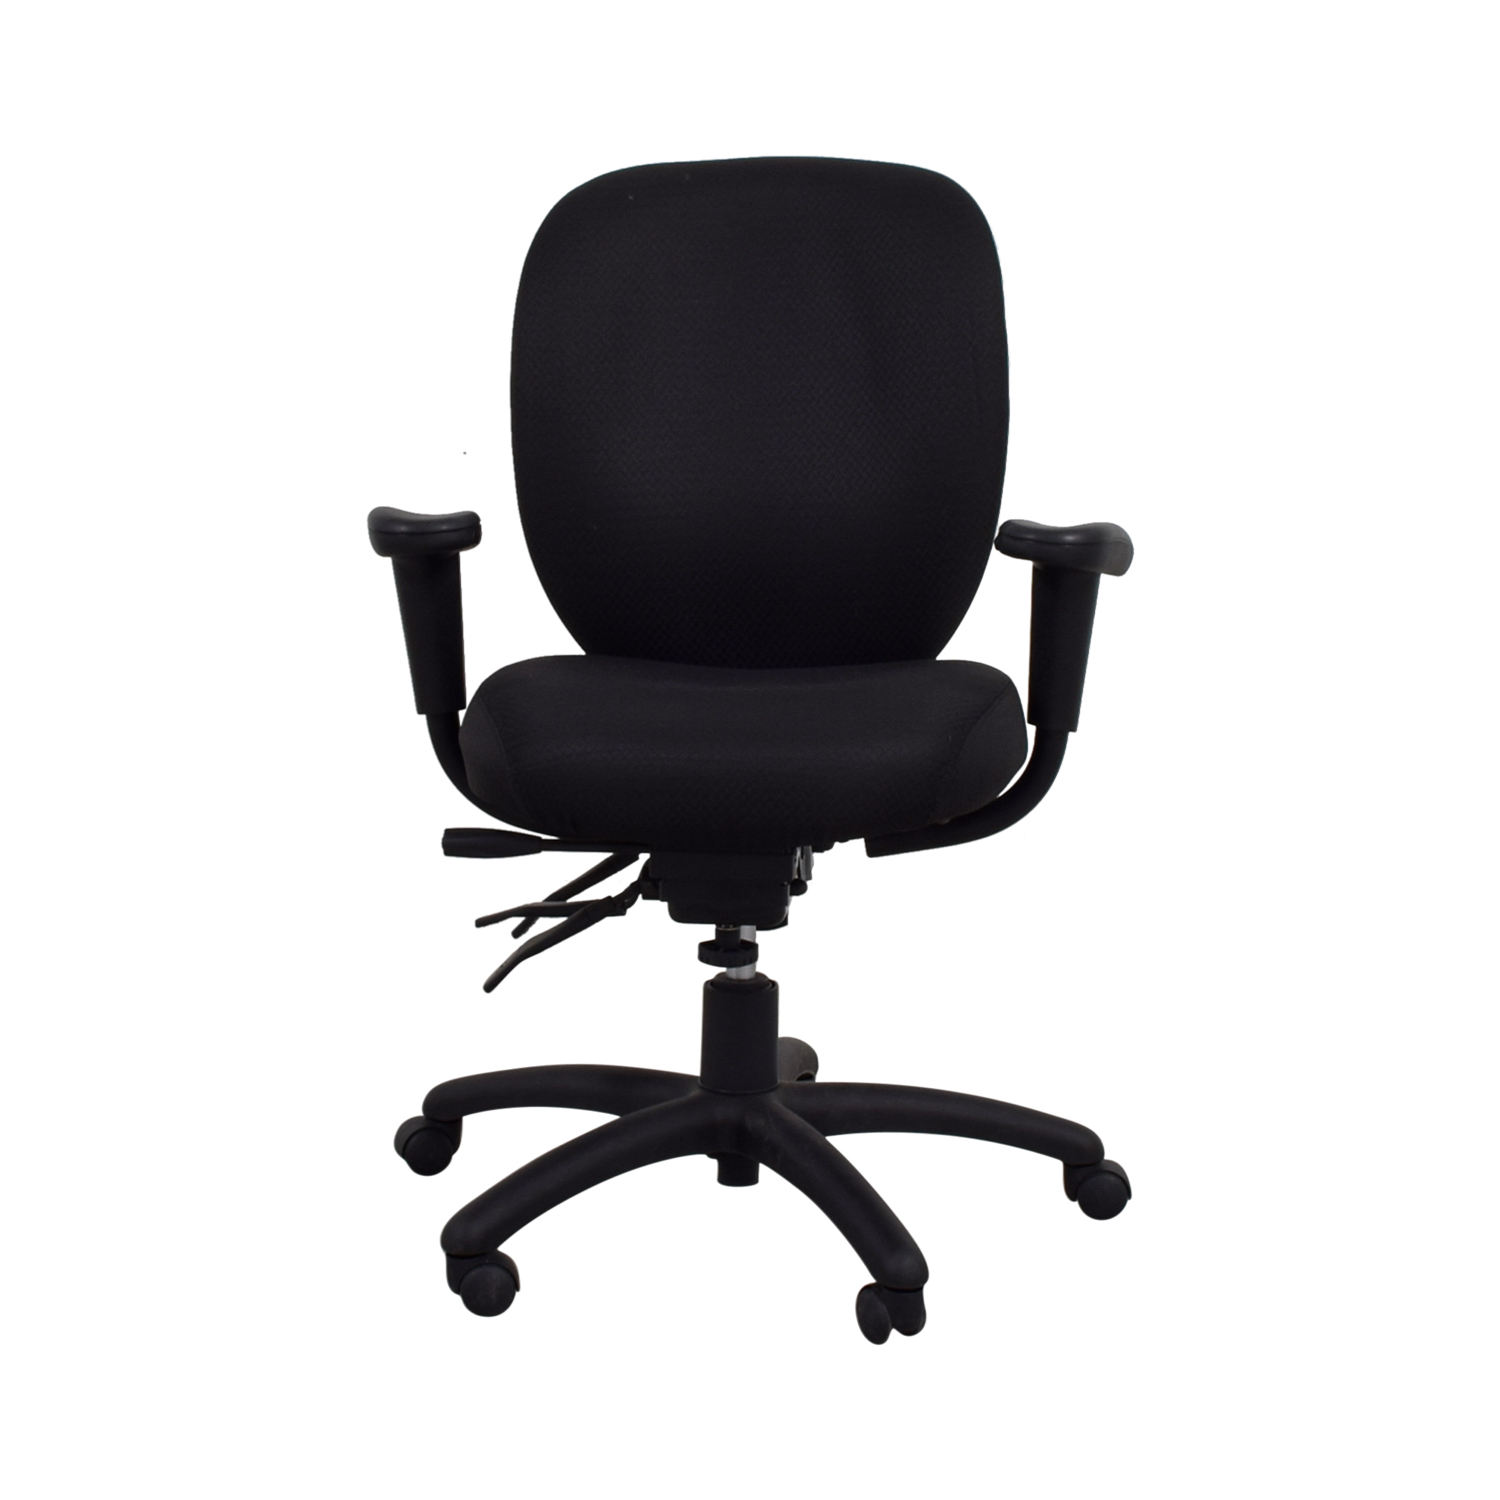 Offices to Go Offices to Go Black Quilt Office Chair used